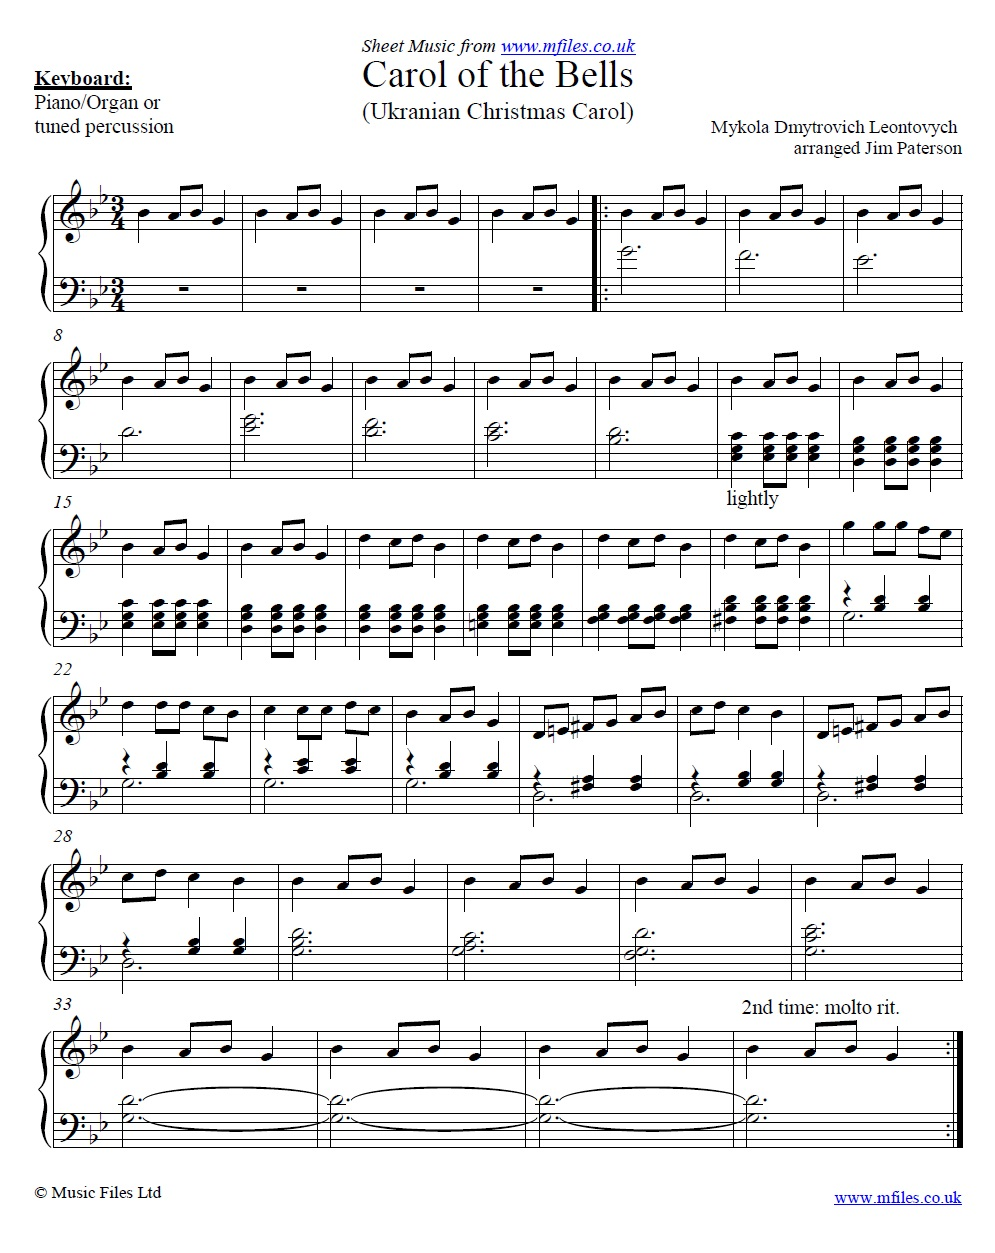 Carol of the Bells for piano - sheet music 1st page